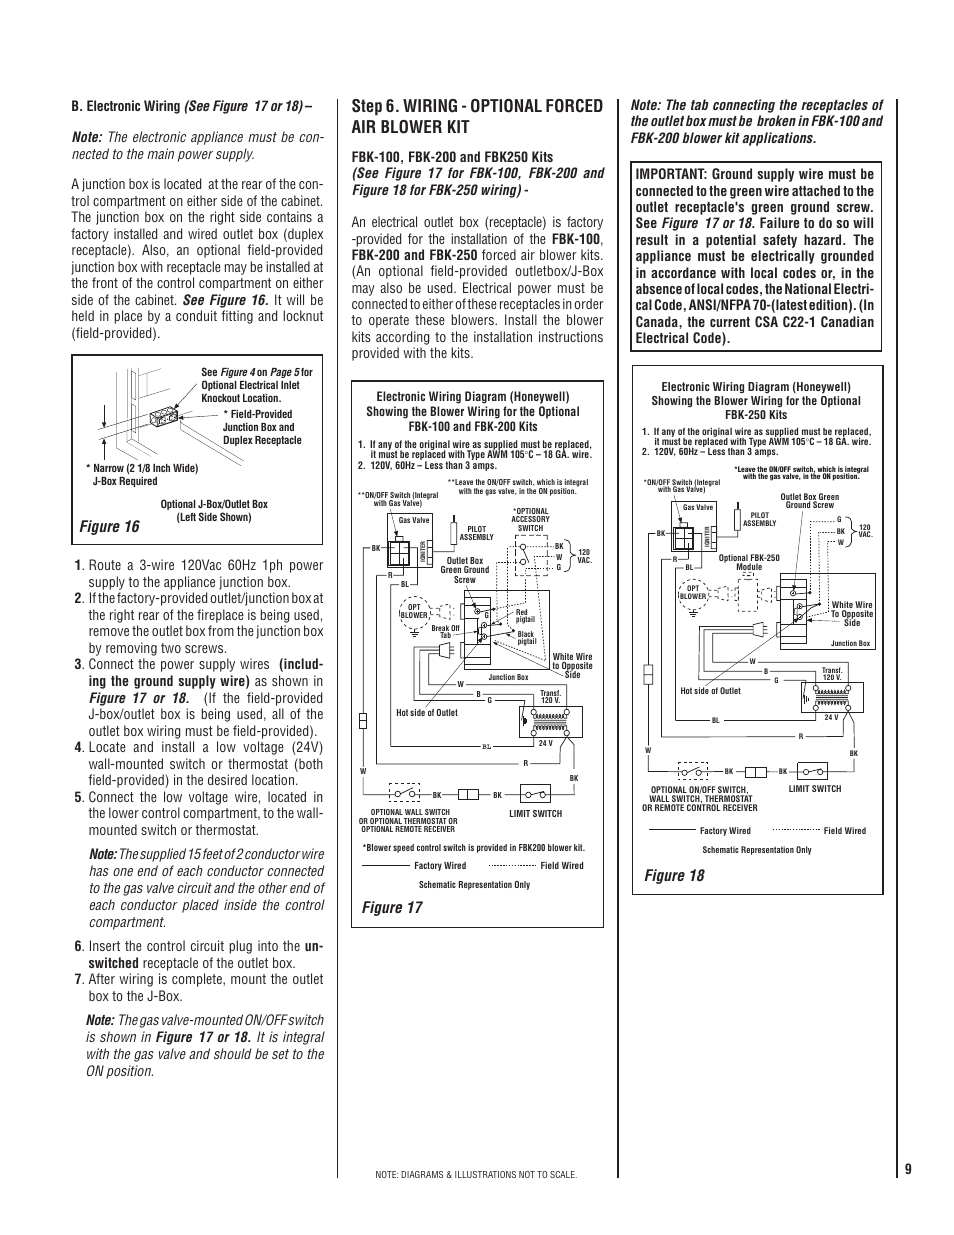 Maxon Gas Valve Wiring Diagram Schematic Diagrams Step 6 Optional Forced Air Blower Kit Telecom